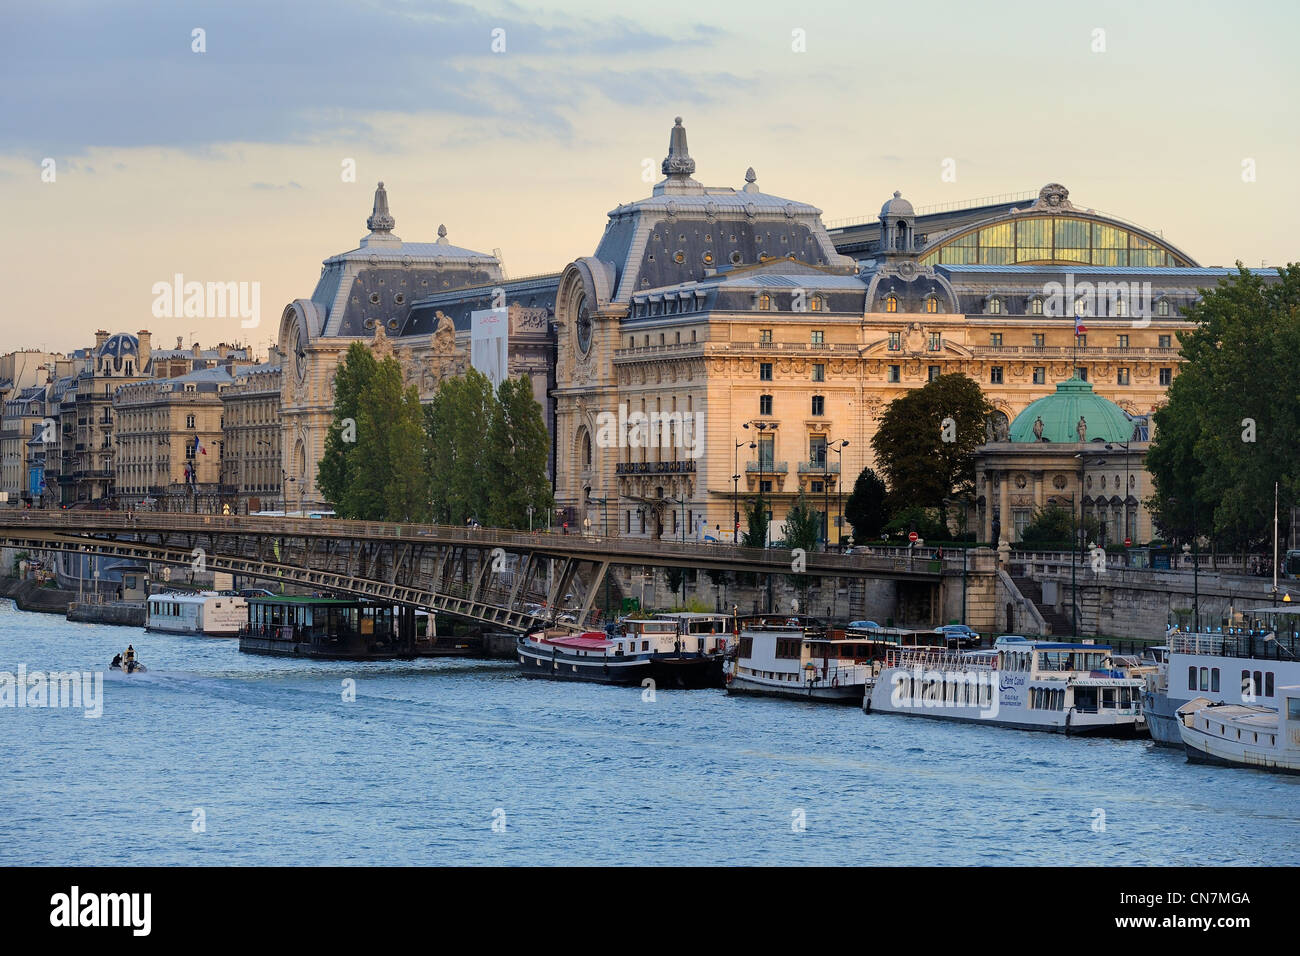 France, Paris, Left Bank, Orsay Museum, housed in the Gare d'Orsay, former railway station (1898) and the Passerelle - Stock Image